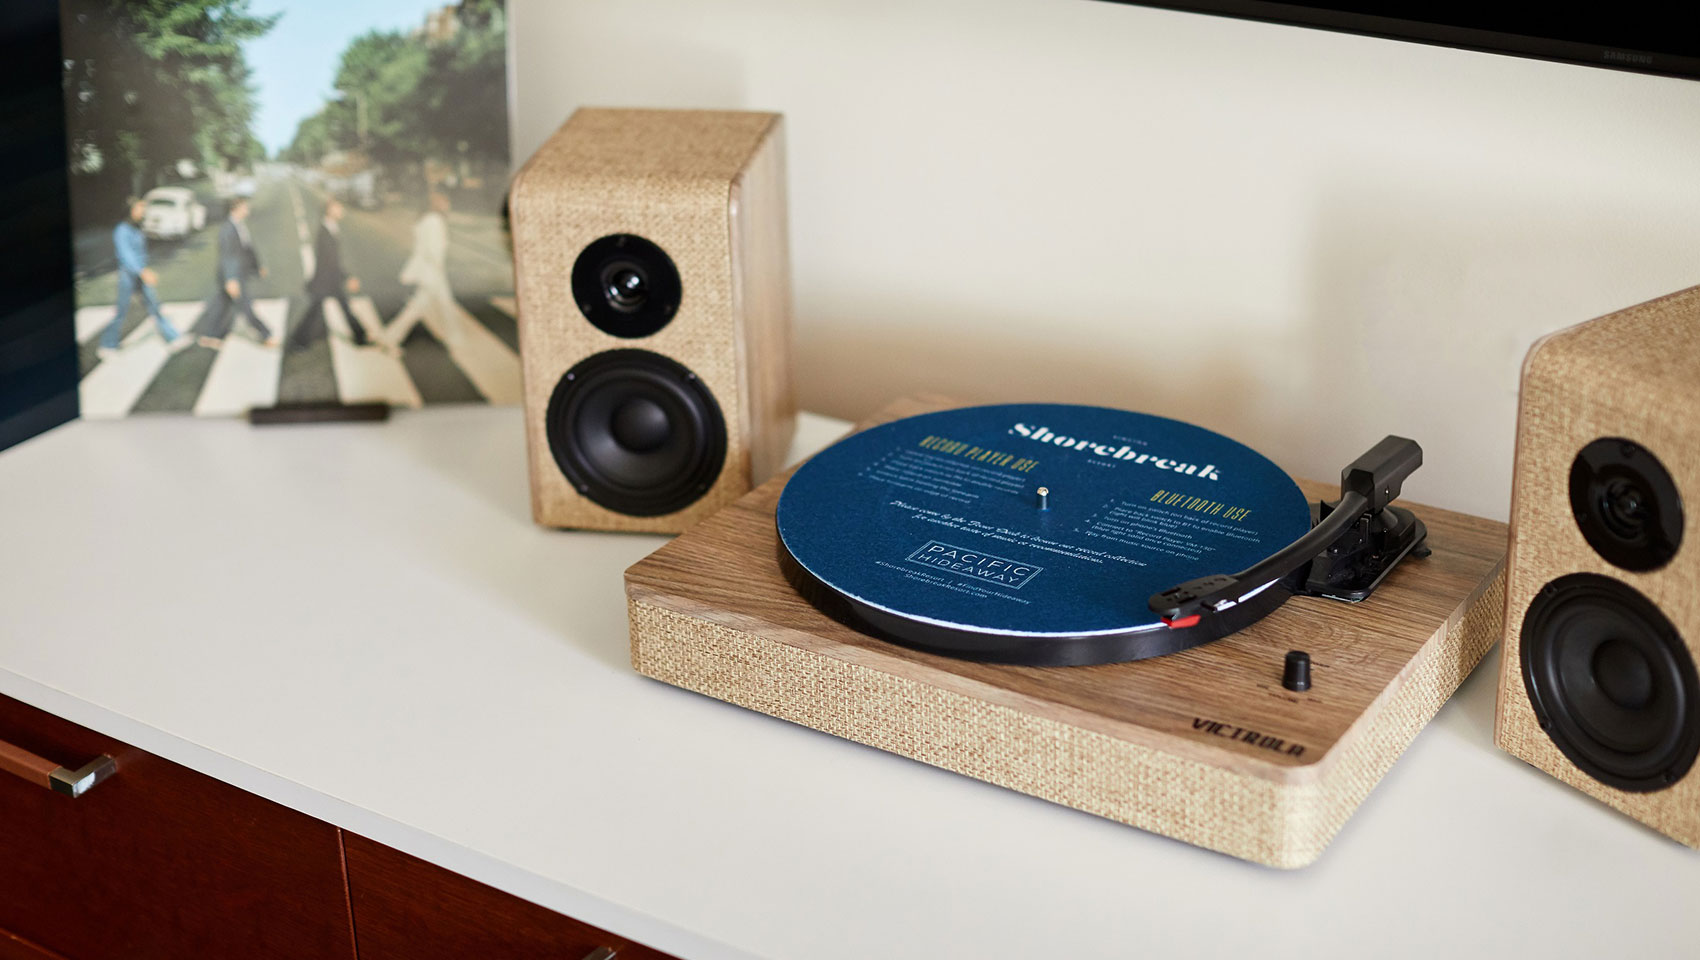 Kimpton Shorebreak in-room record players